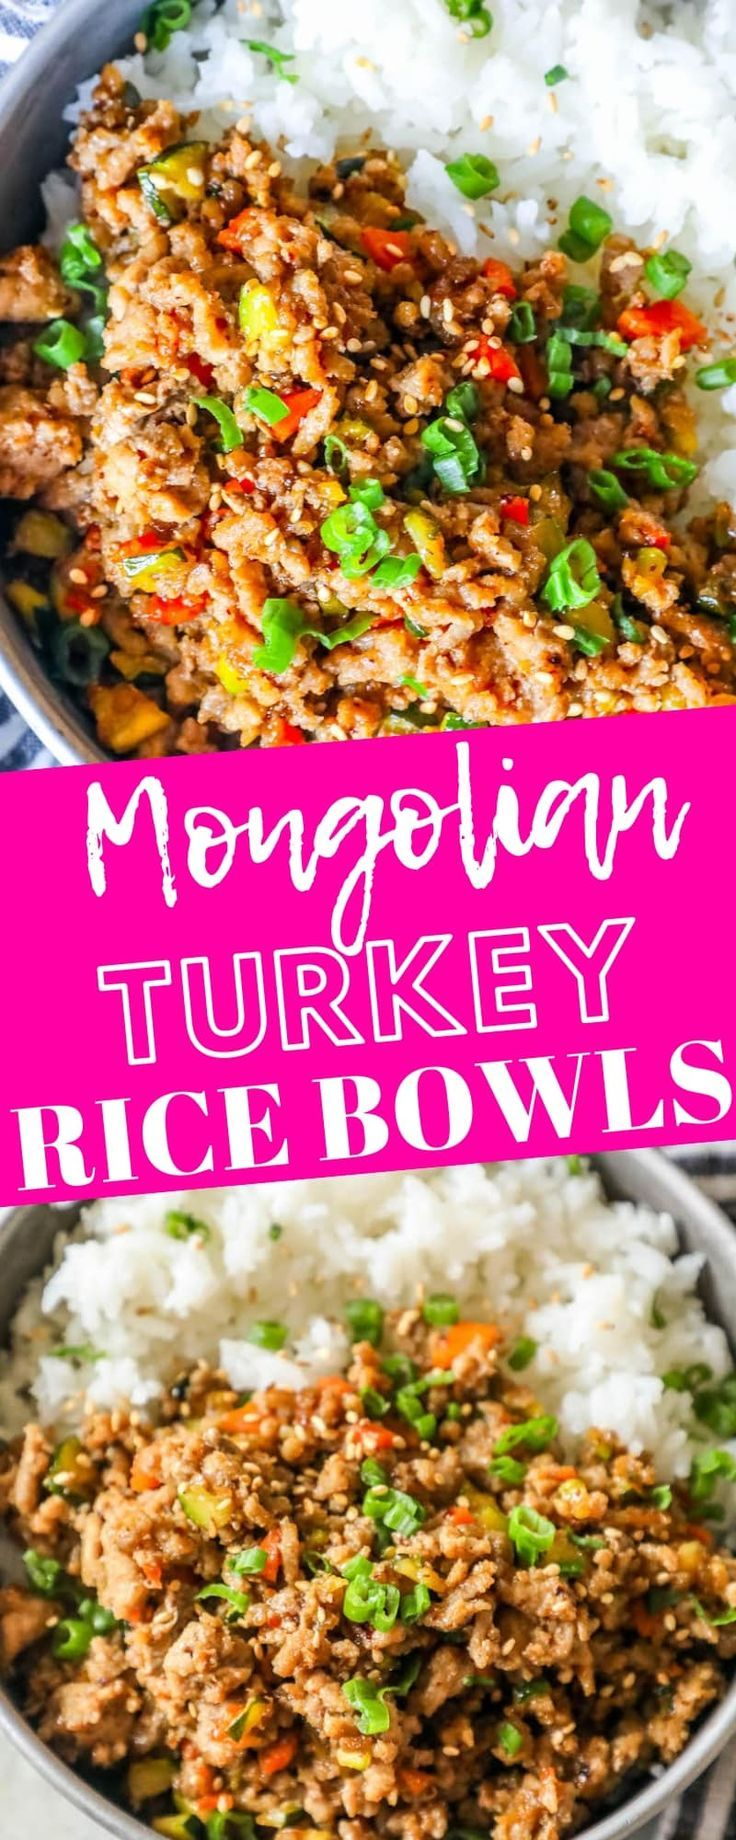 Easy Mongolian Turkey And Rice Bowls Recipe Sweet Cs Designs With Images Ground Turkey Recipes Easy Rice Bowls Recipes Healthy Turkey Recipes